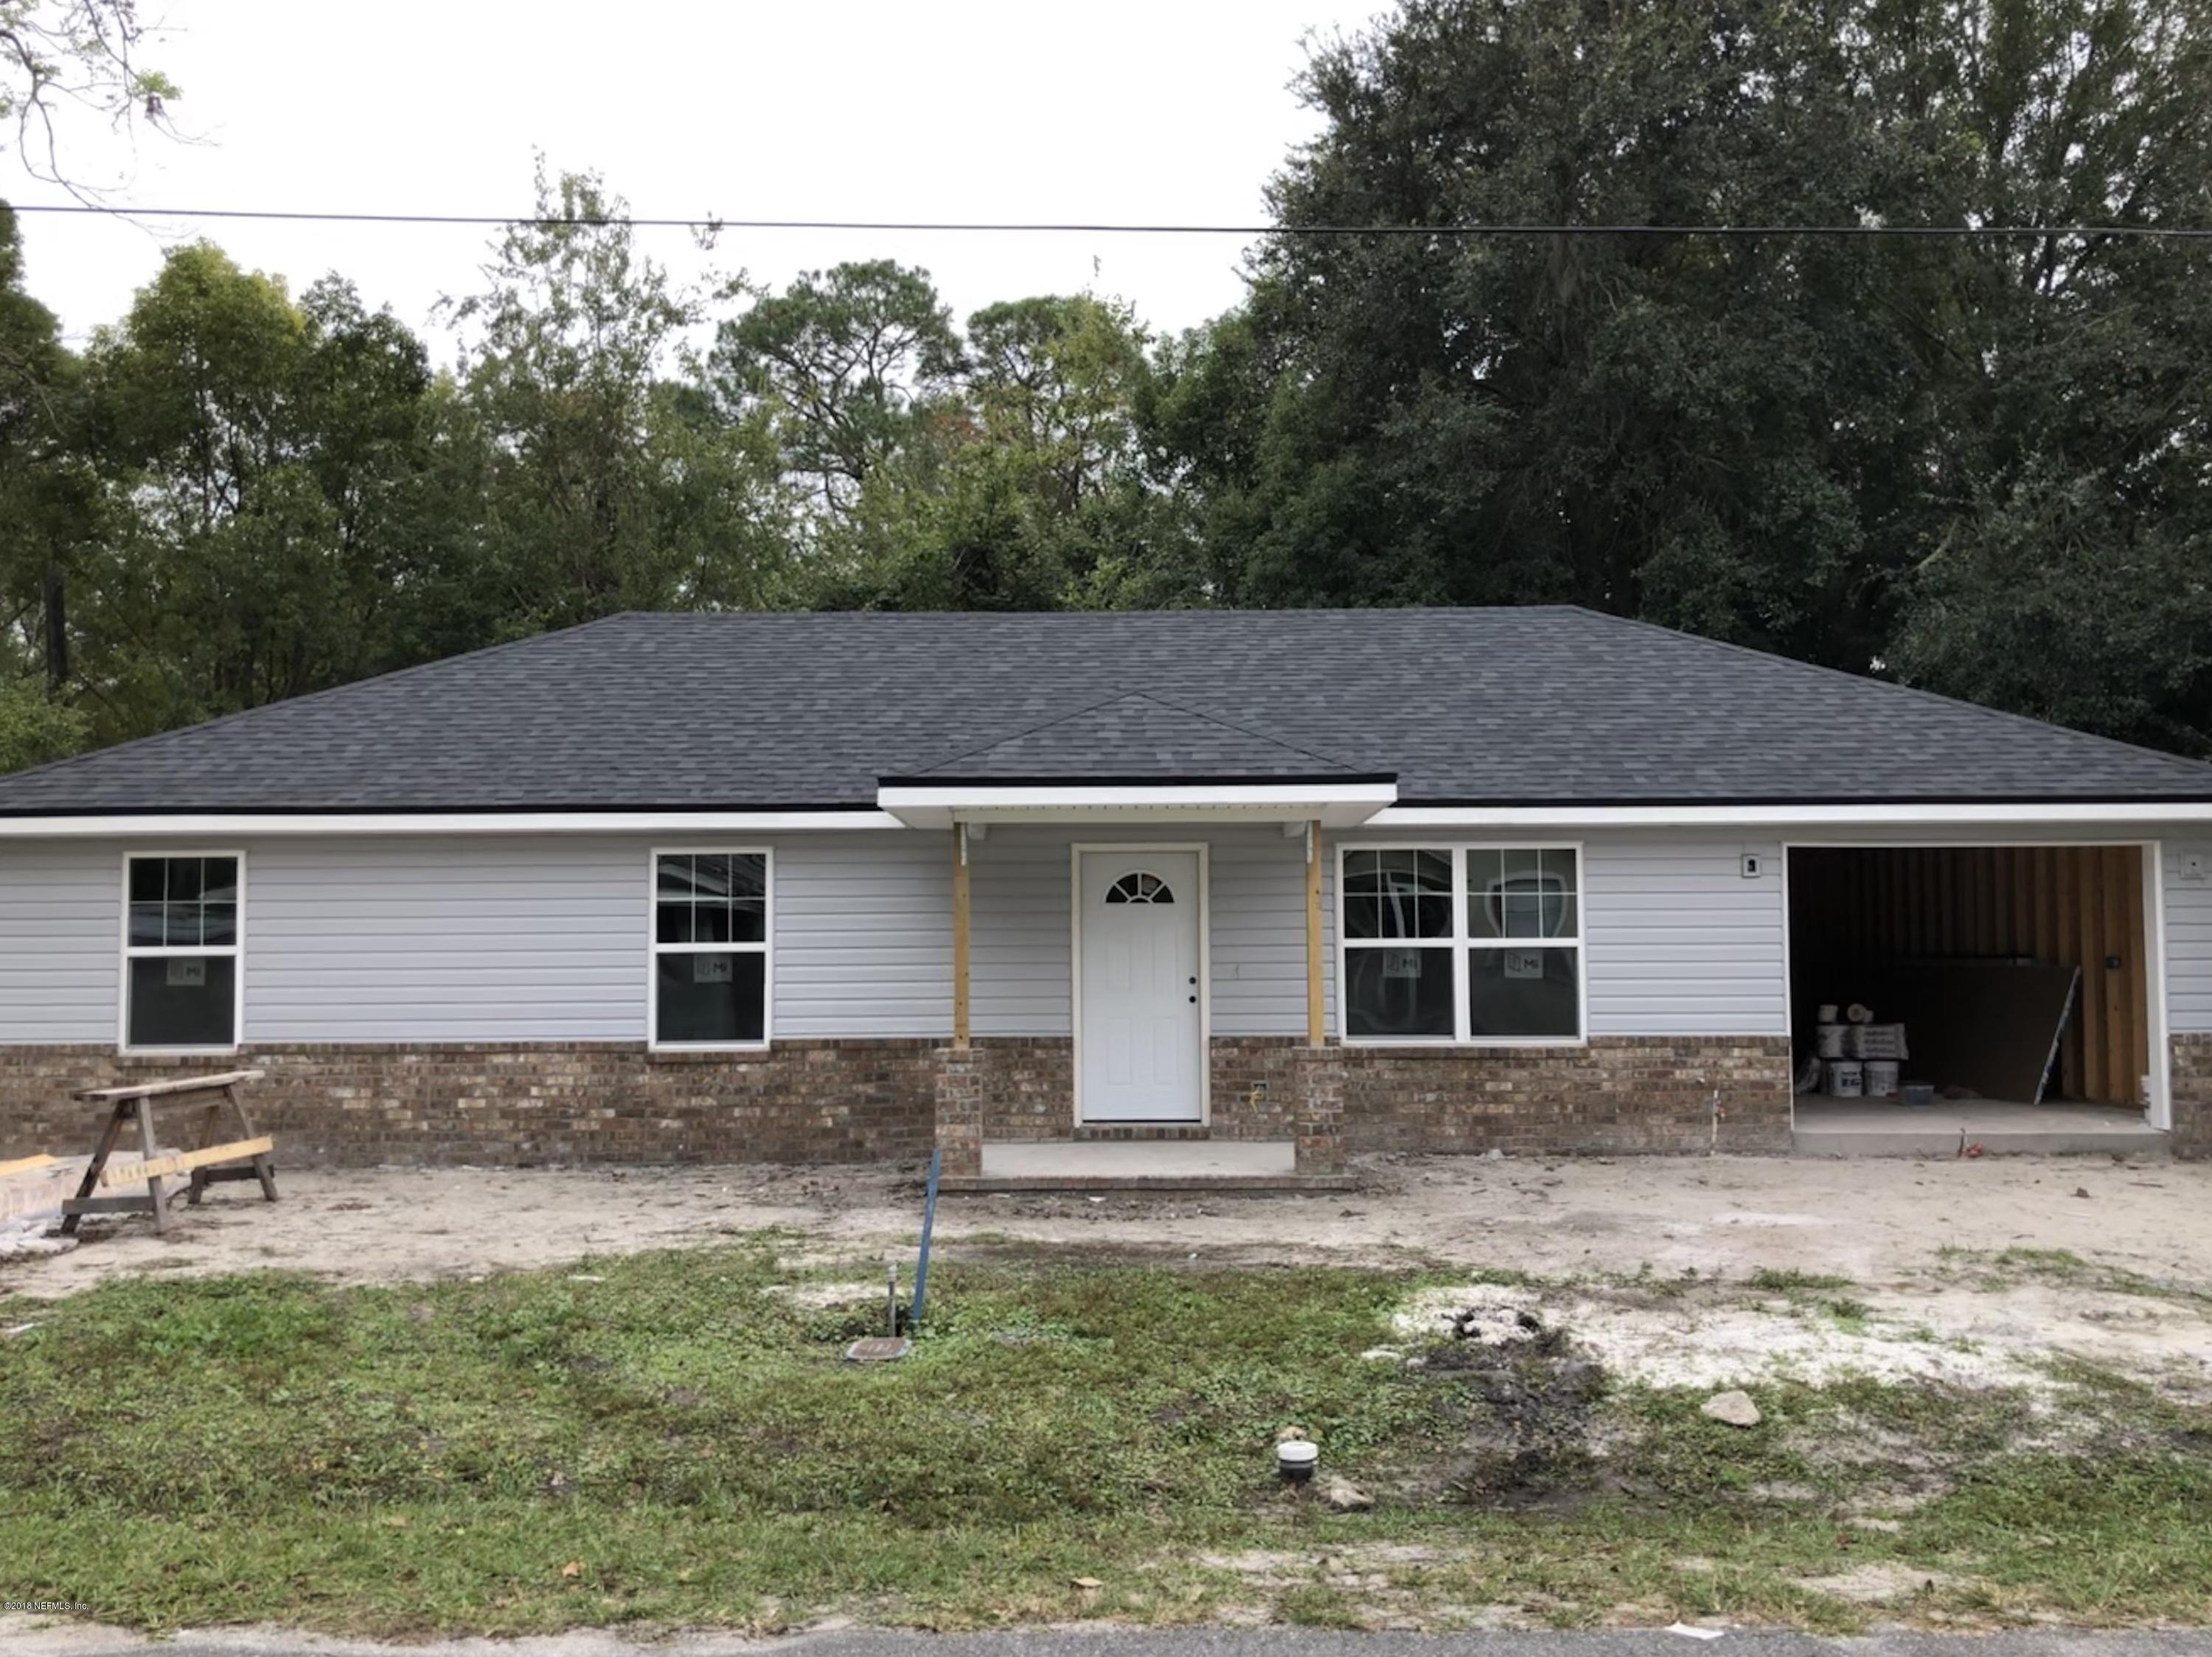 424 CENTER, STARKE, FLORIDA 32091, 3 Bedrooms Bedrooms, ,2 BathroomsBathrooms,Residential - single family,For sale,CENTER,967491